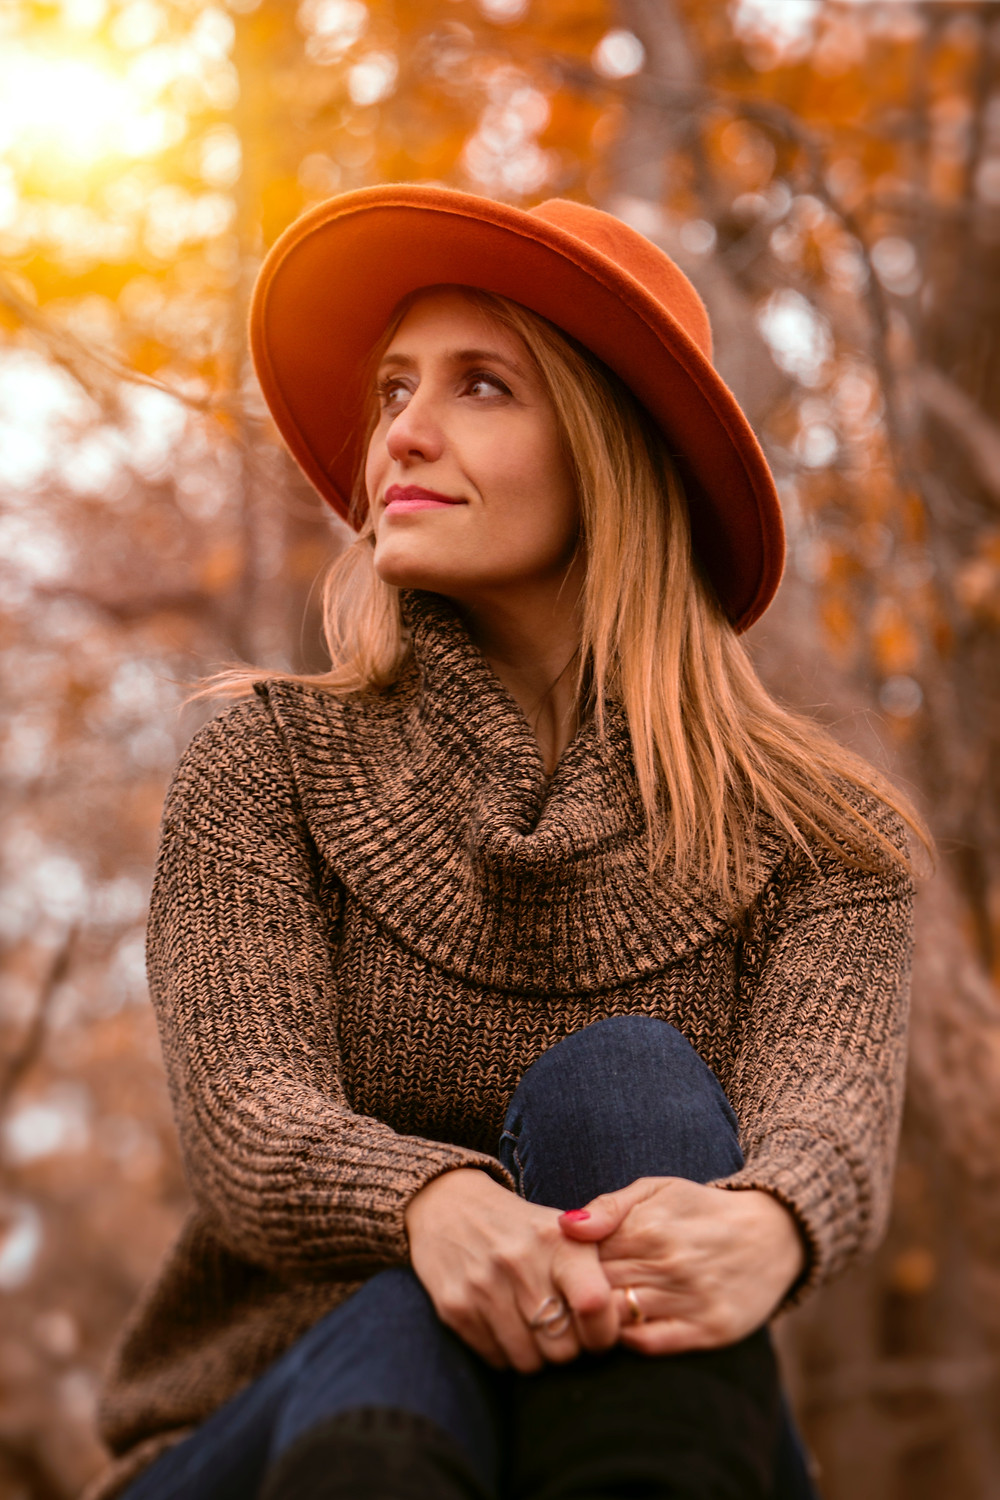 Hats for winter wear, how to style your hair in the morning for cold days and hot summer style fashionistas